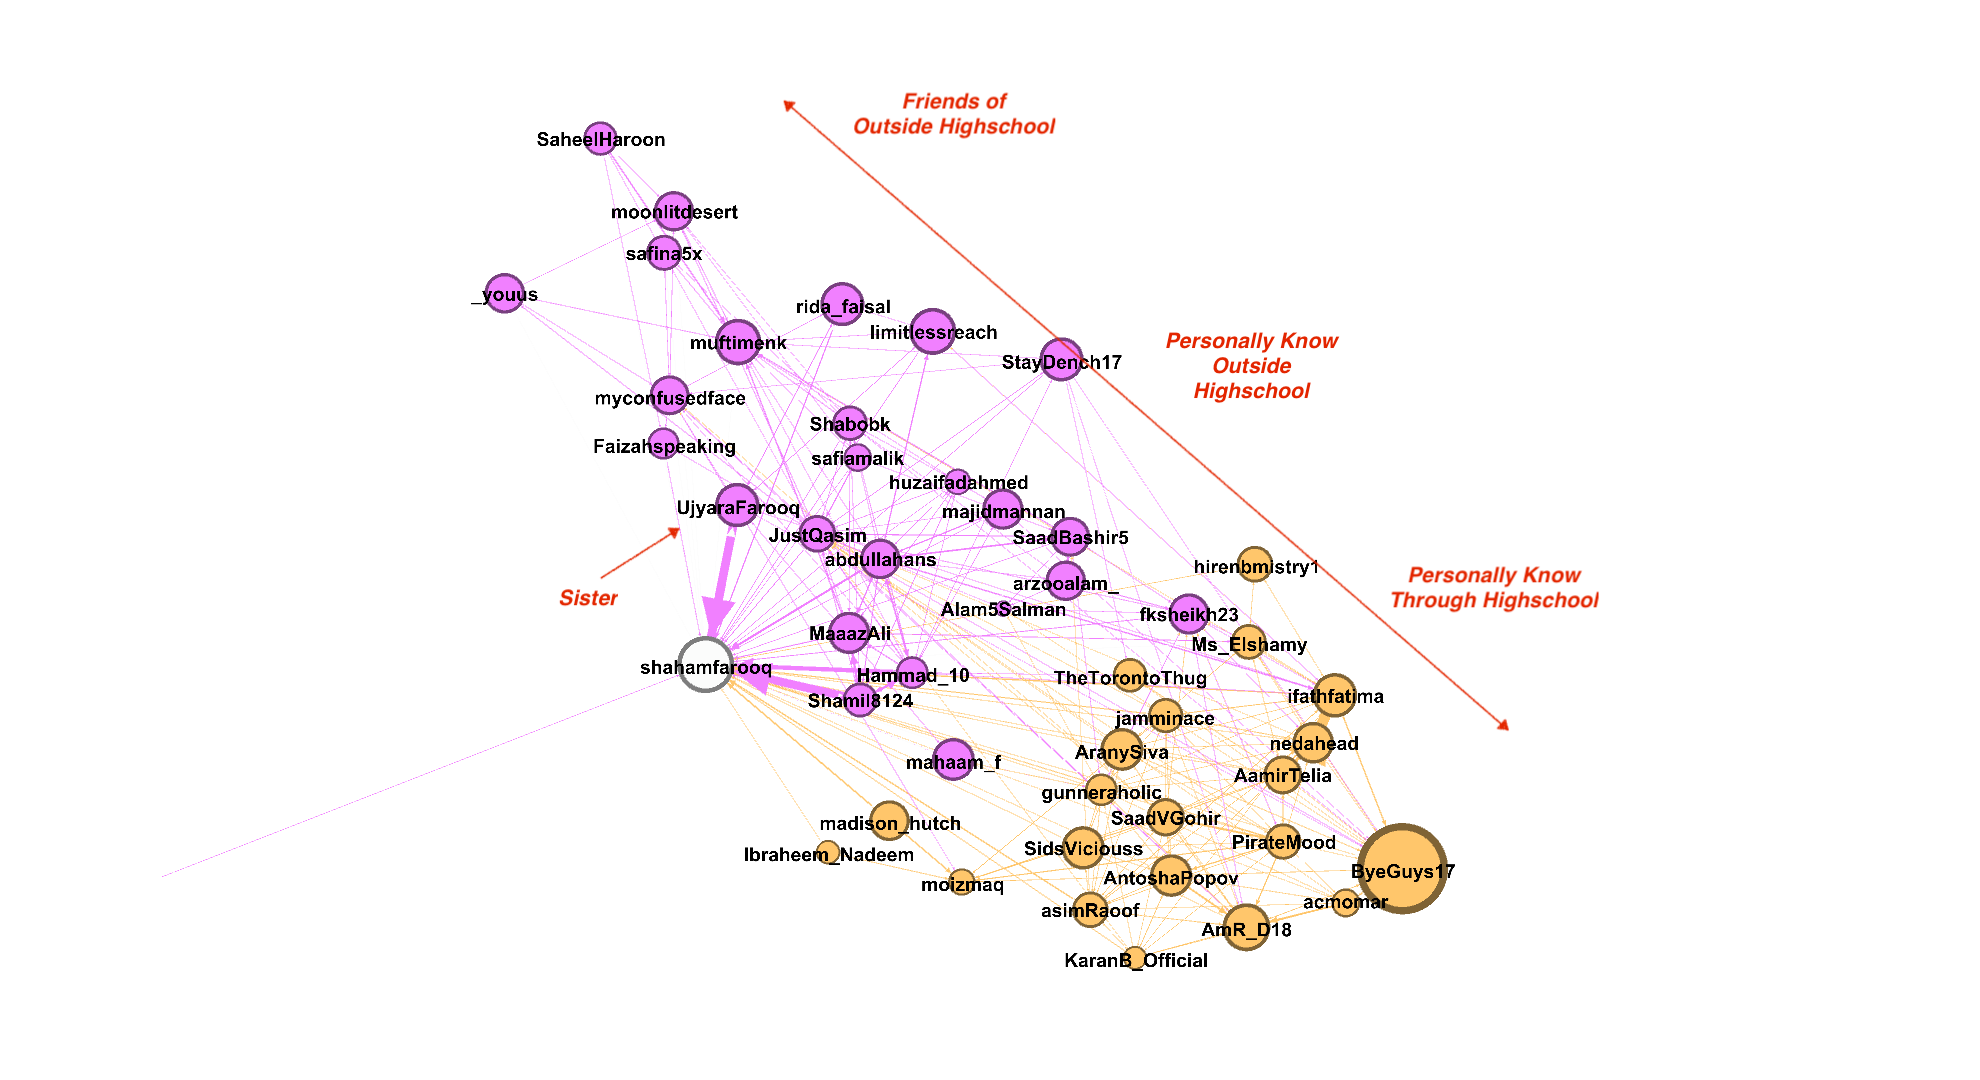 umair-akbar-1*T5miGQTpM00DrFpNRf1ZcA - A Graph-based approach to community detection in Twitter Networks